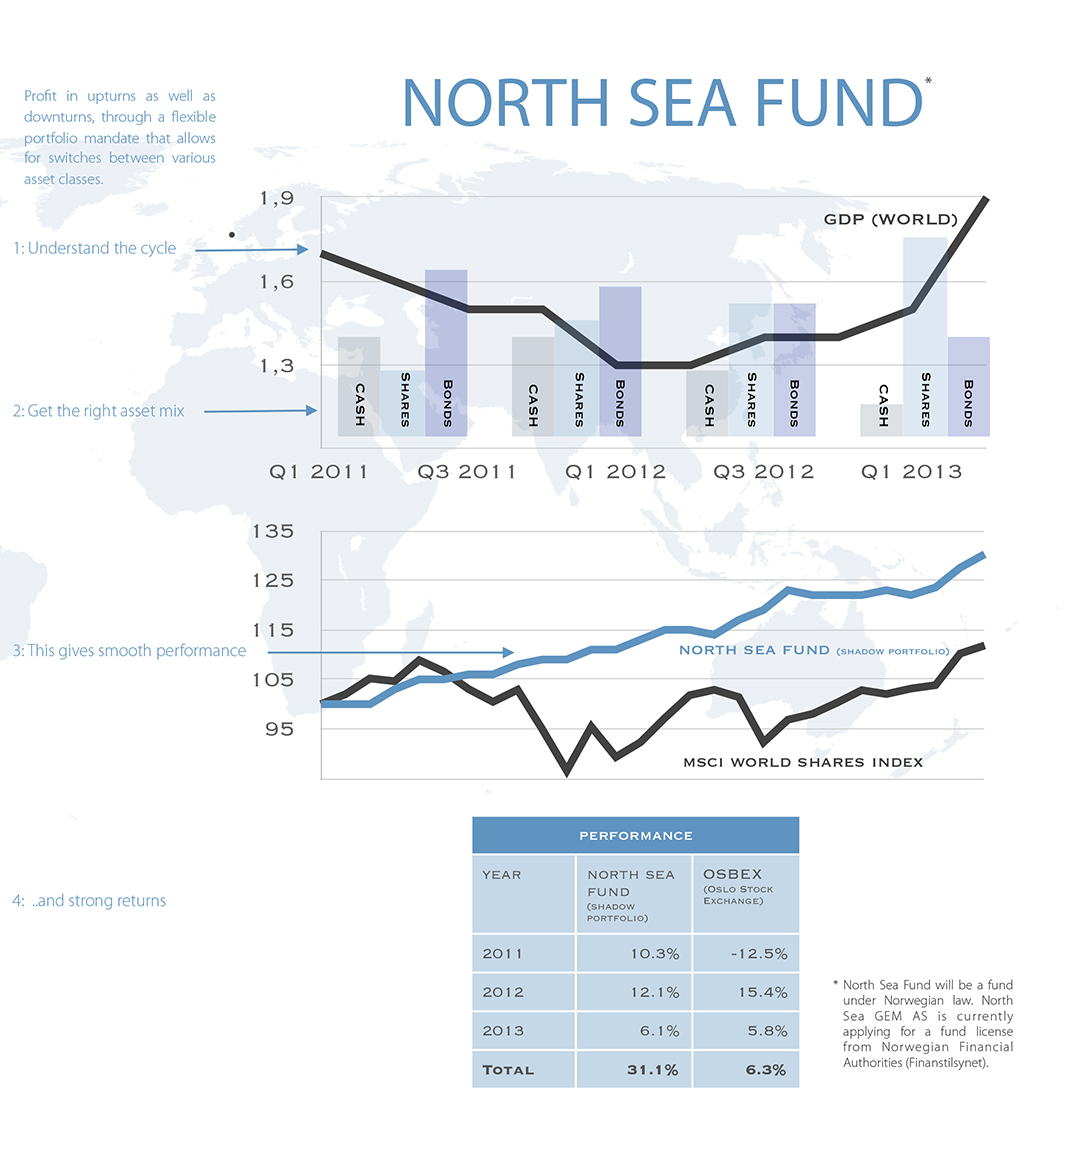 North Sea GEM (Global Equity Management)